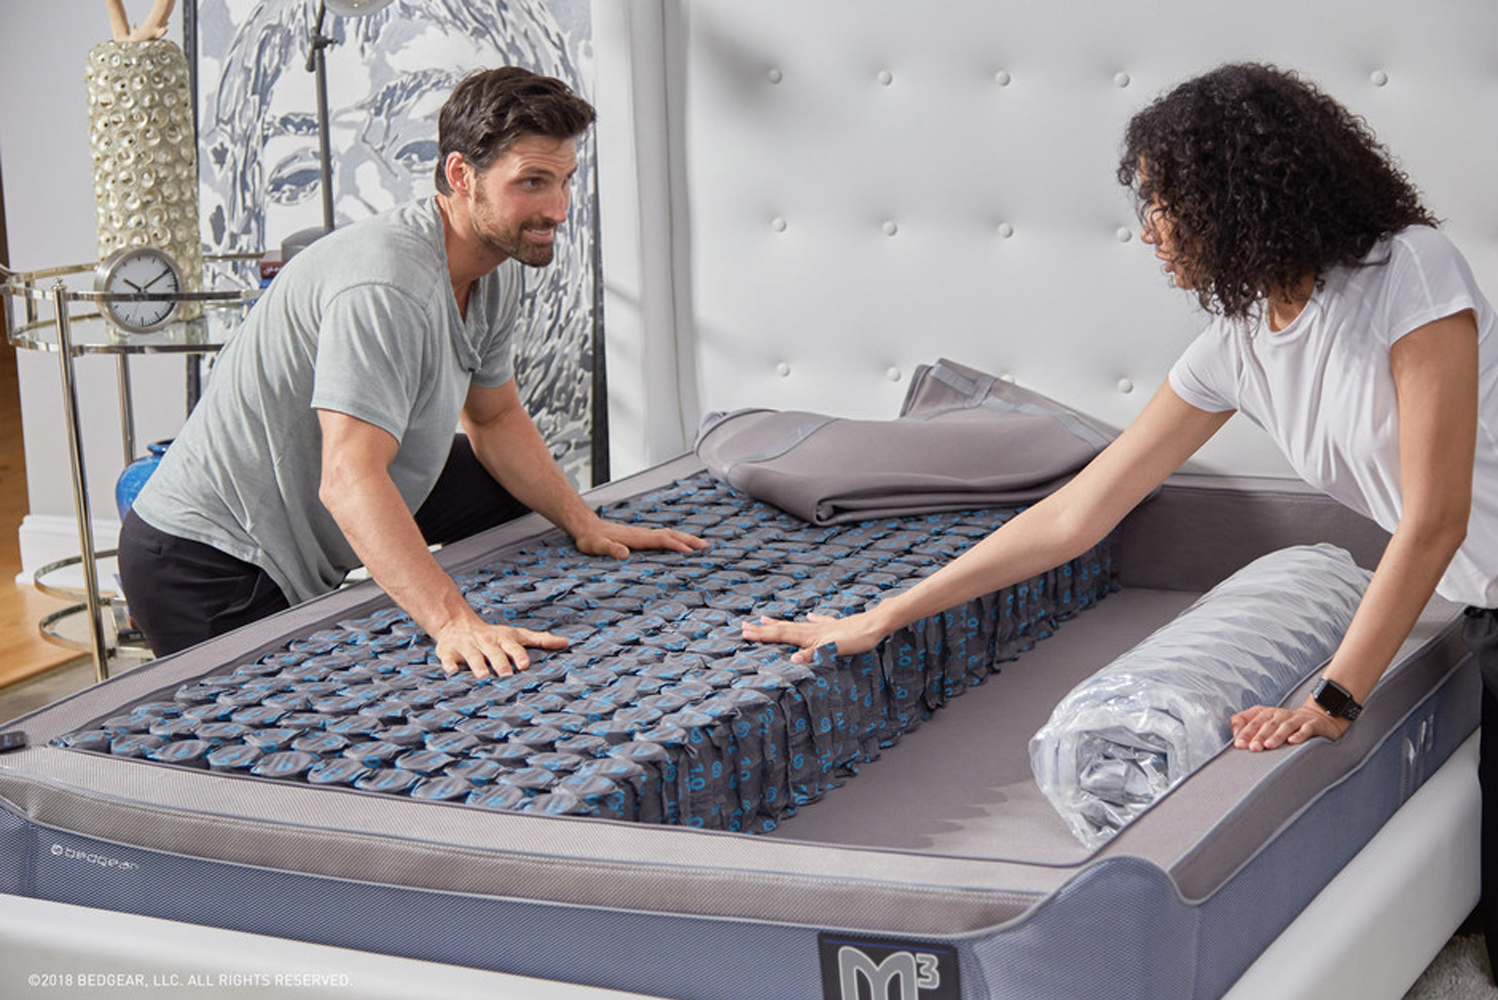 The mattress features Air-X ventilated panels around the entire circumference of the mattress, to keep air flowing, reduce heat build-up and allow the body to more easily regulate its temperature.